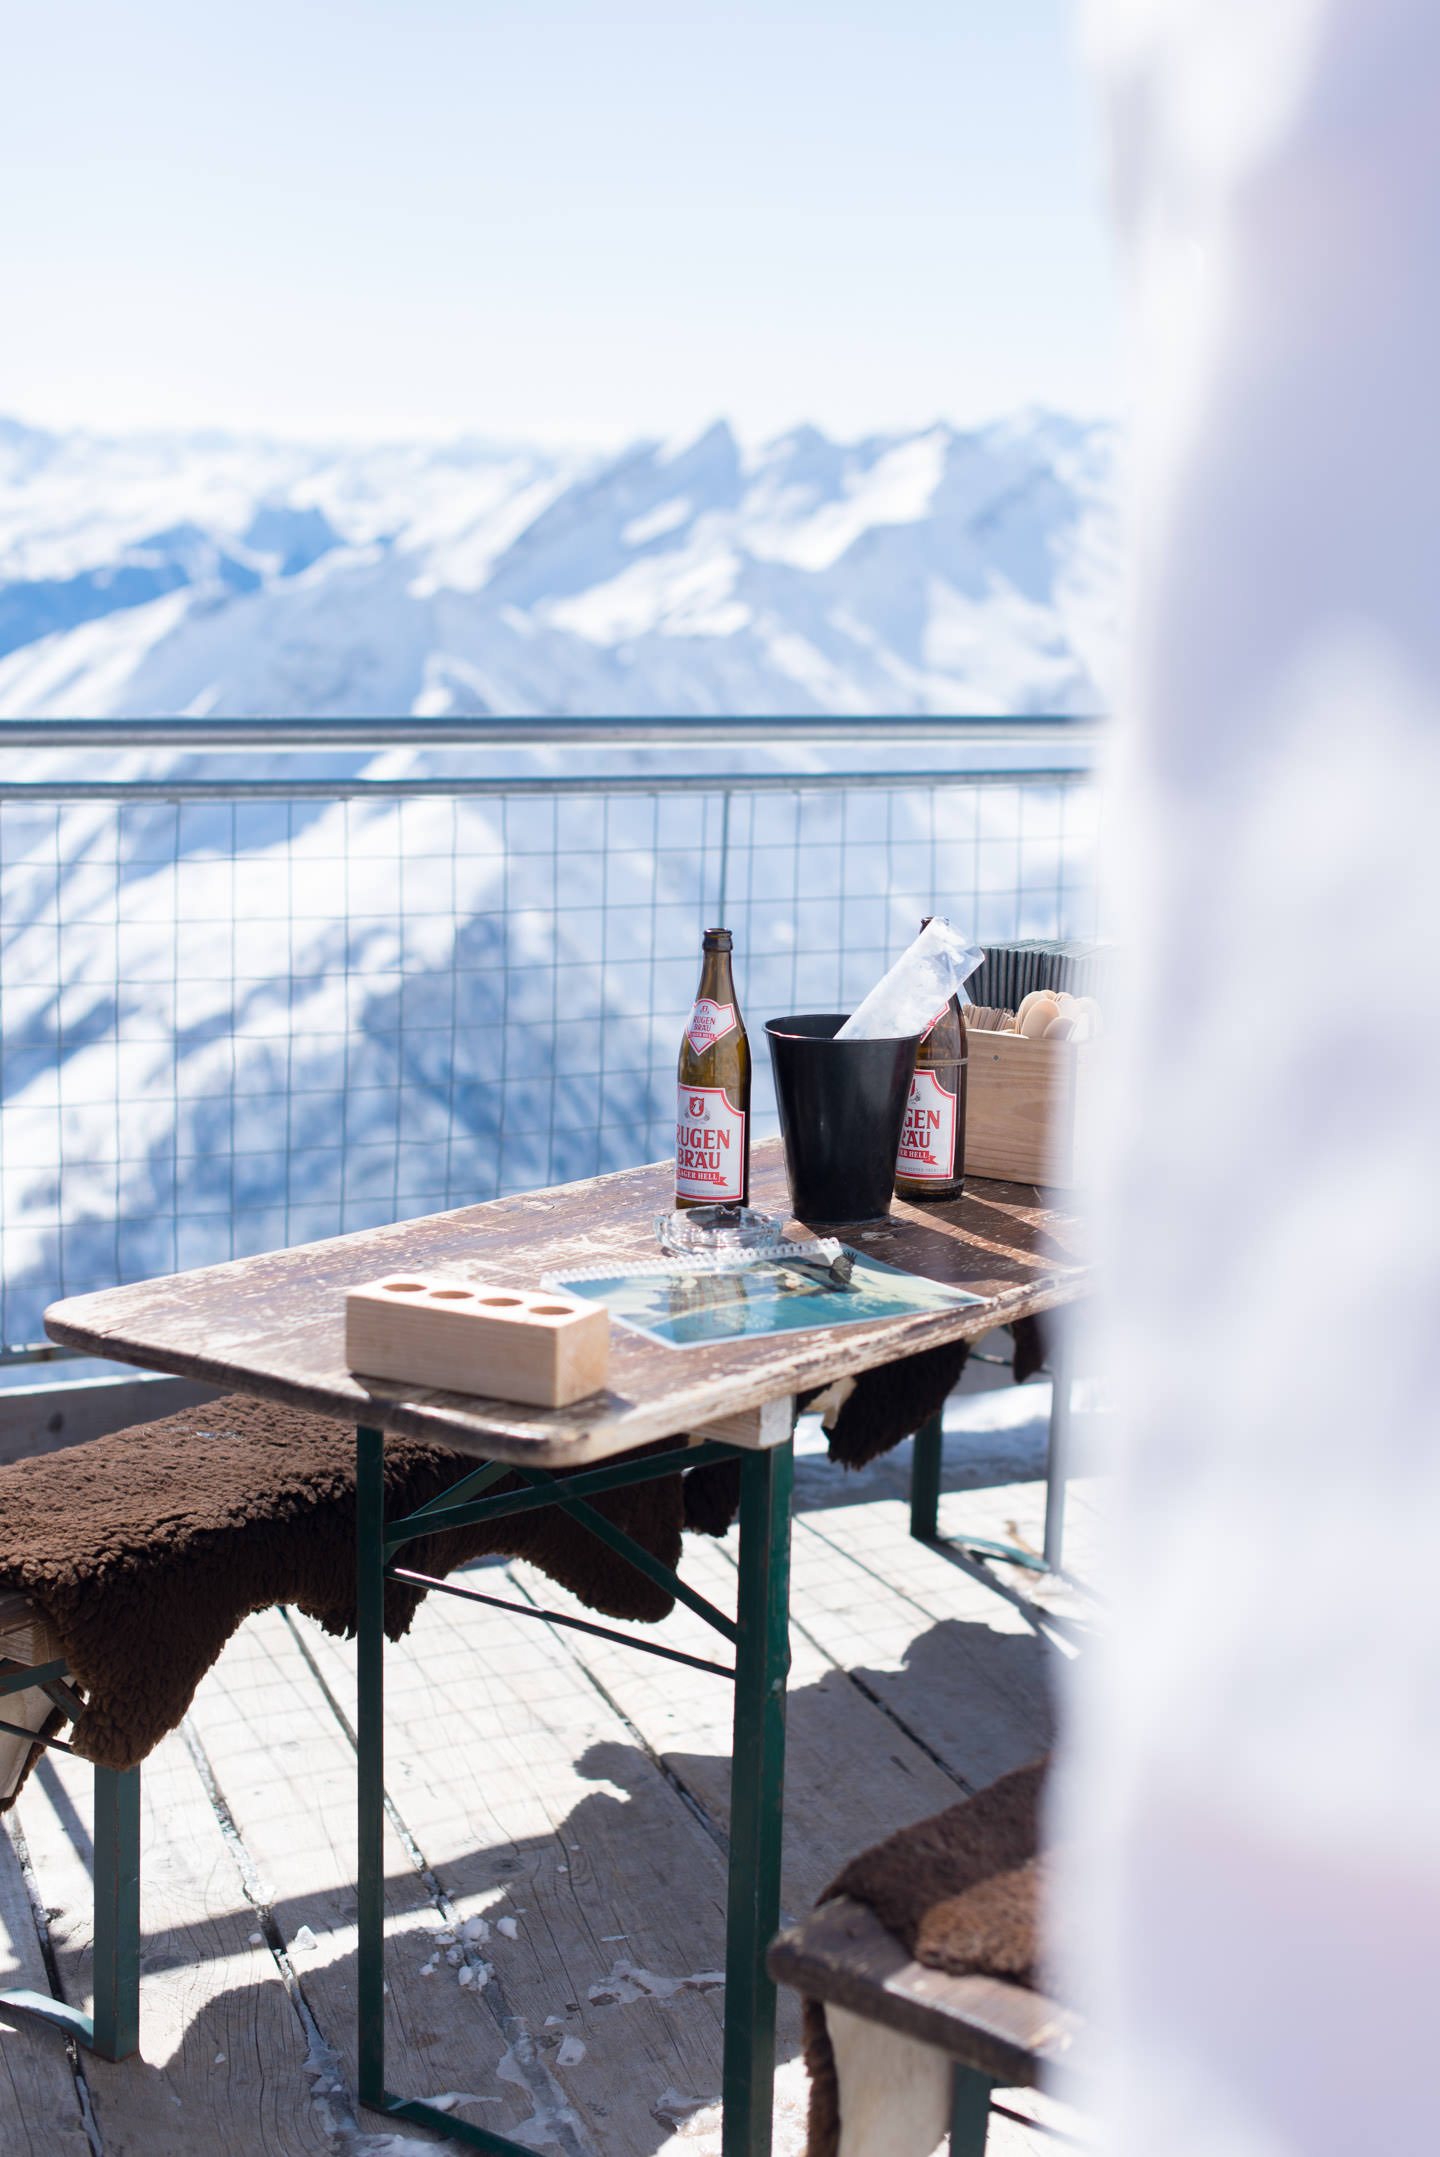 Blog-Mode-And-The-City-Lifestyle-Parenthese-Enchantee-Gstaad-Suisse-Glacier-3000-restaurant-altitude